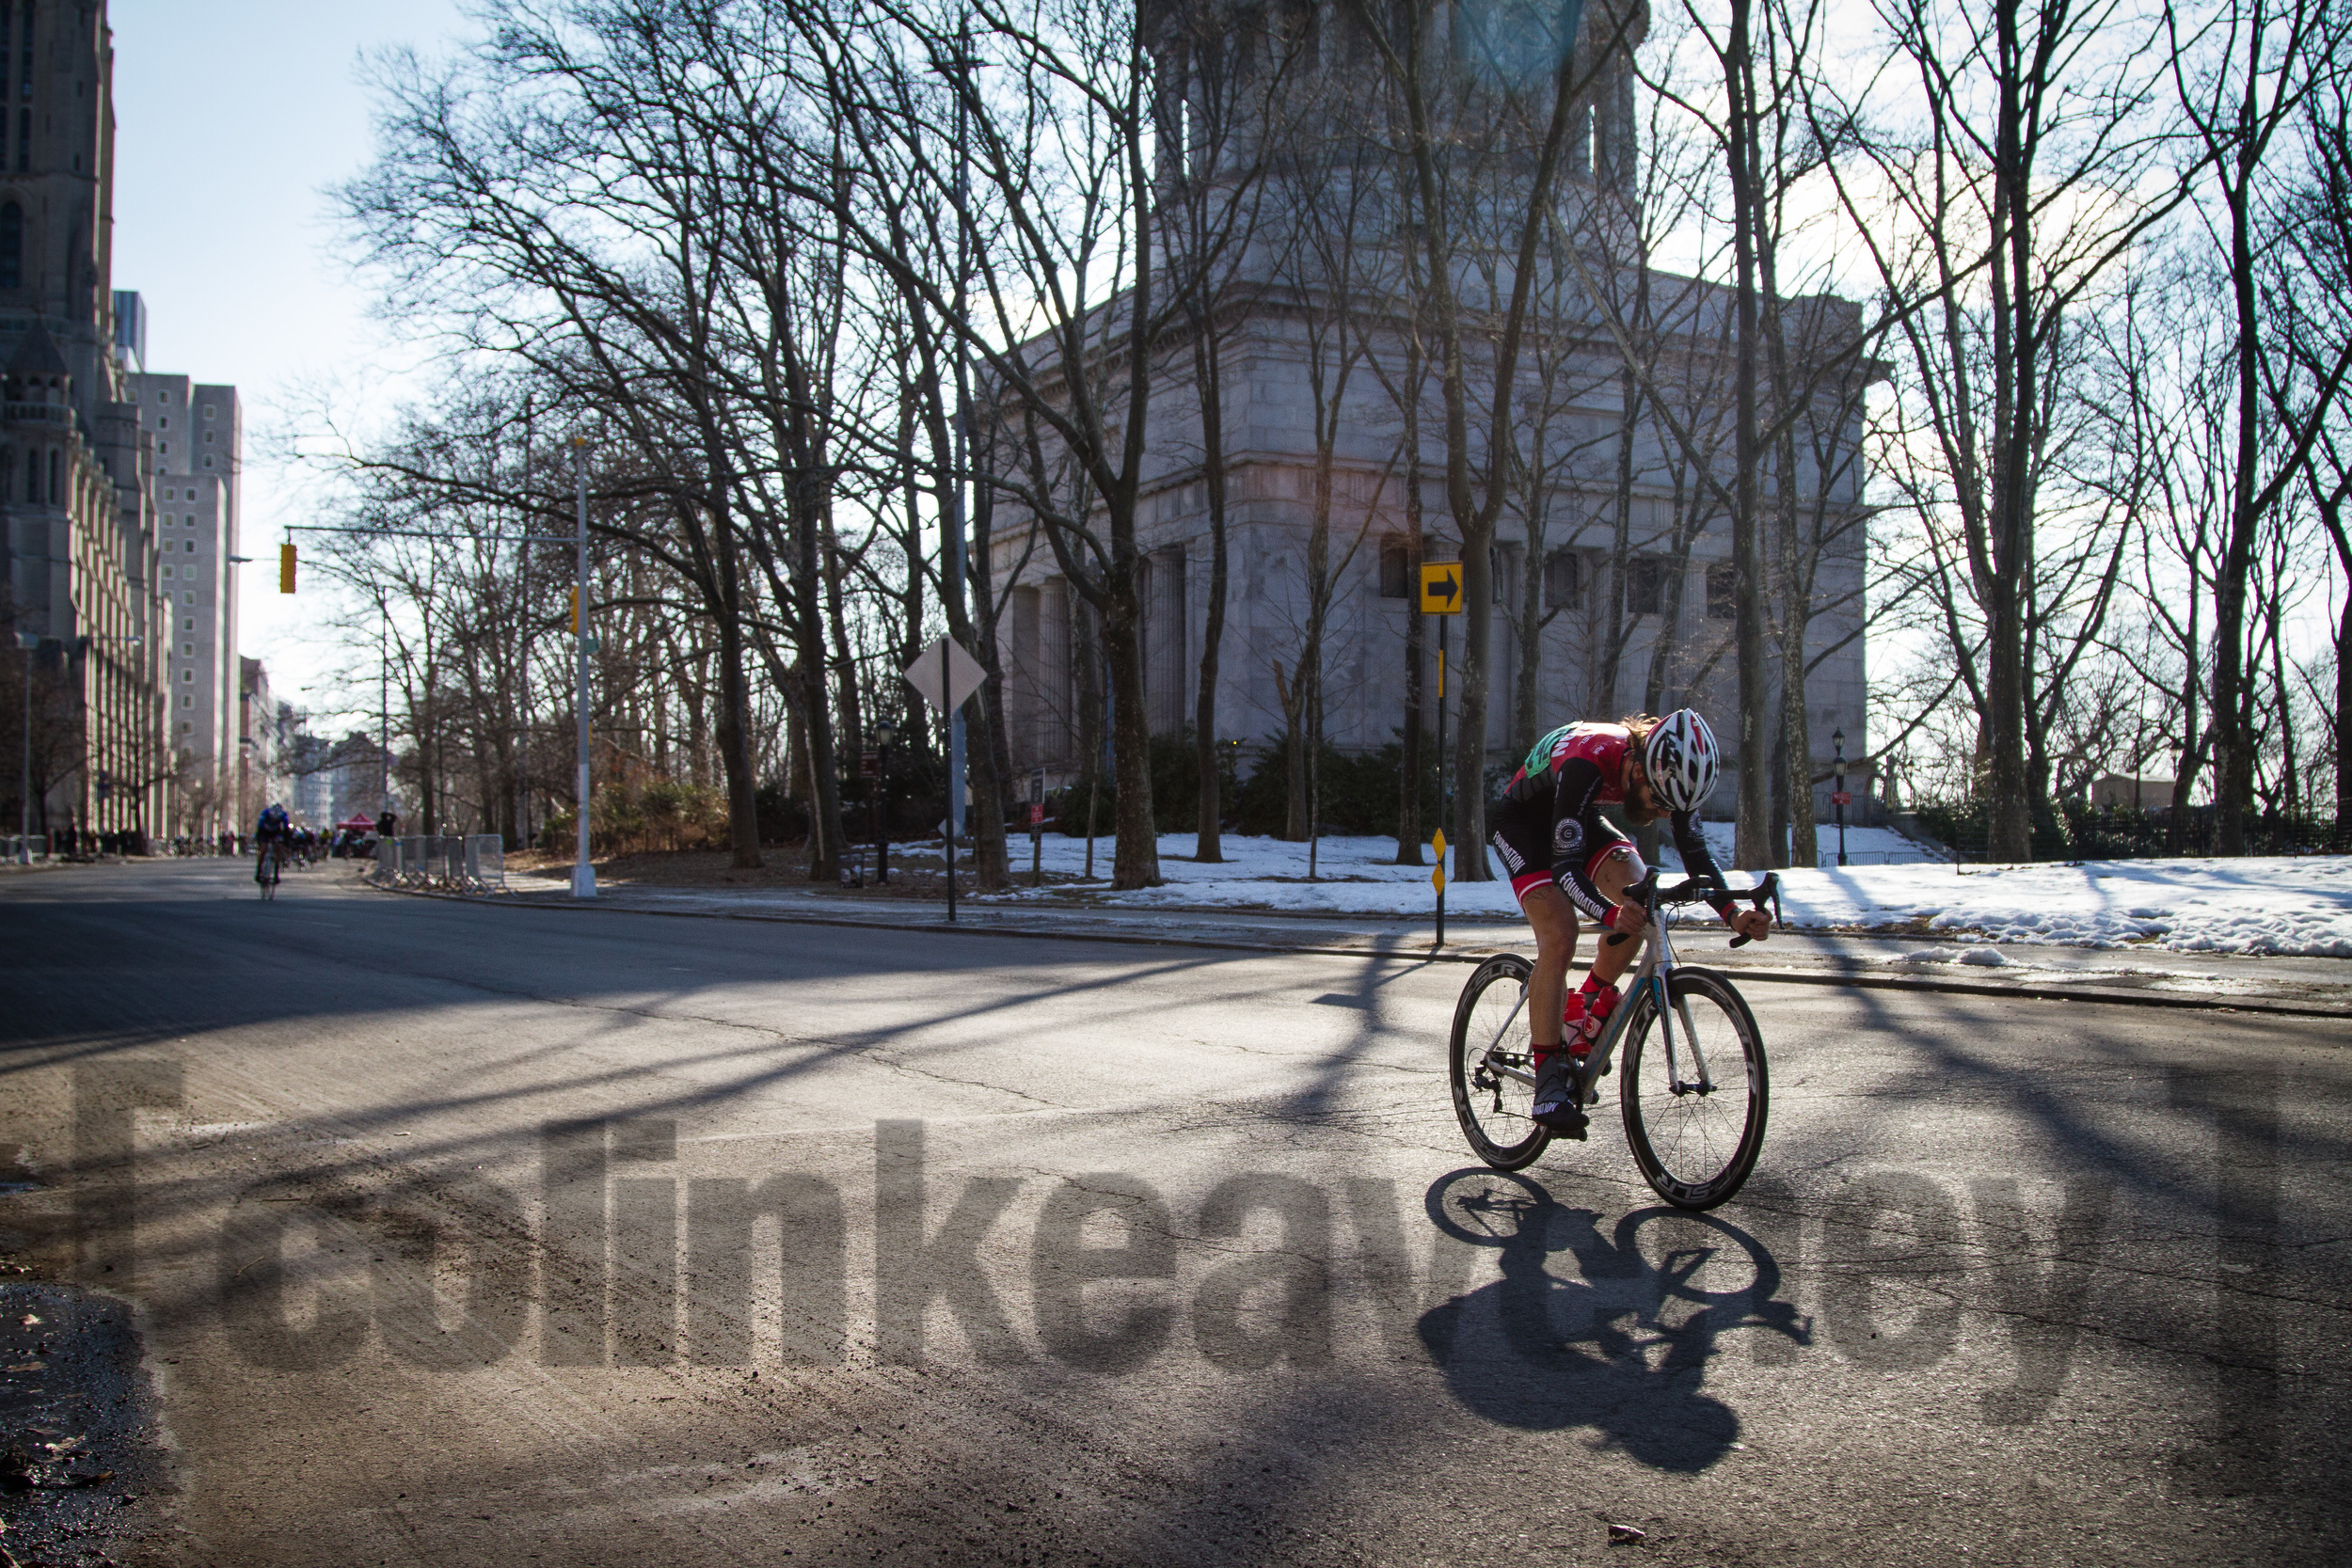 Grant's Tomb Crit, the weekend after the following events.